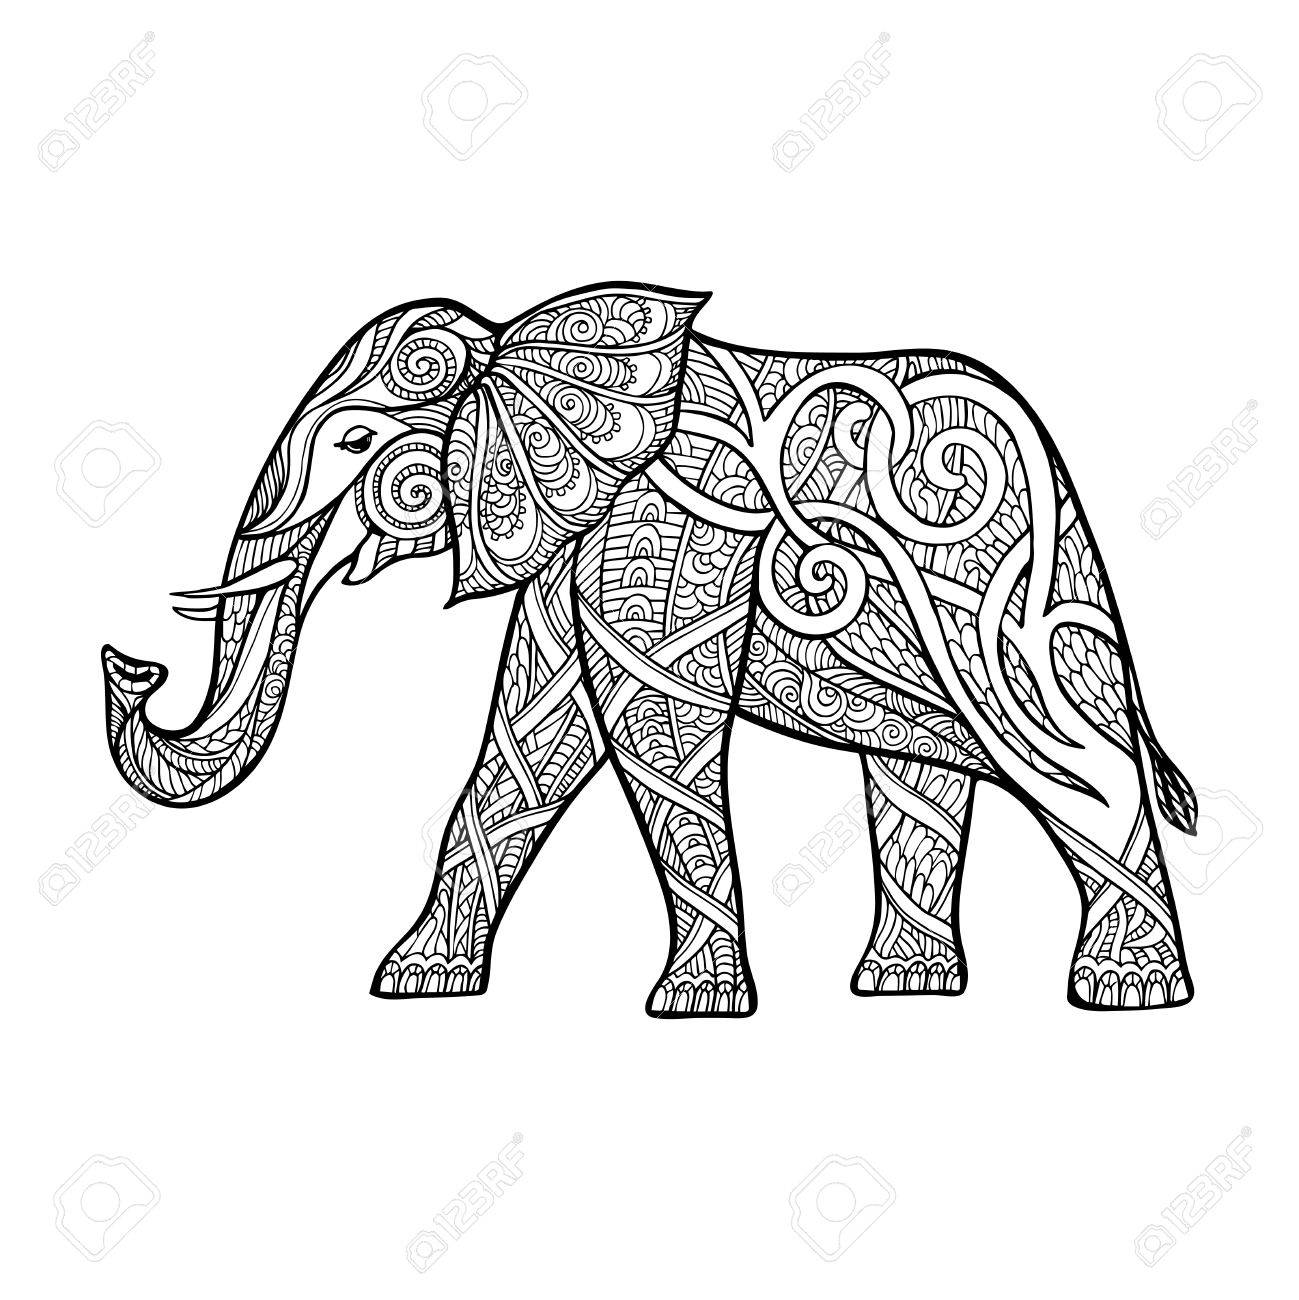 Elephant Outline Drawing at GetDrawings.com | Free for personal use ...